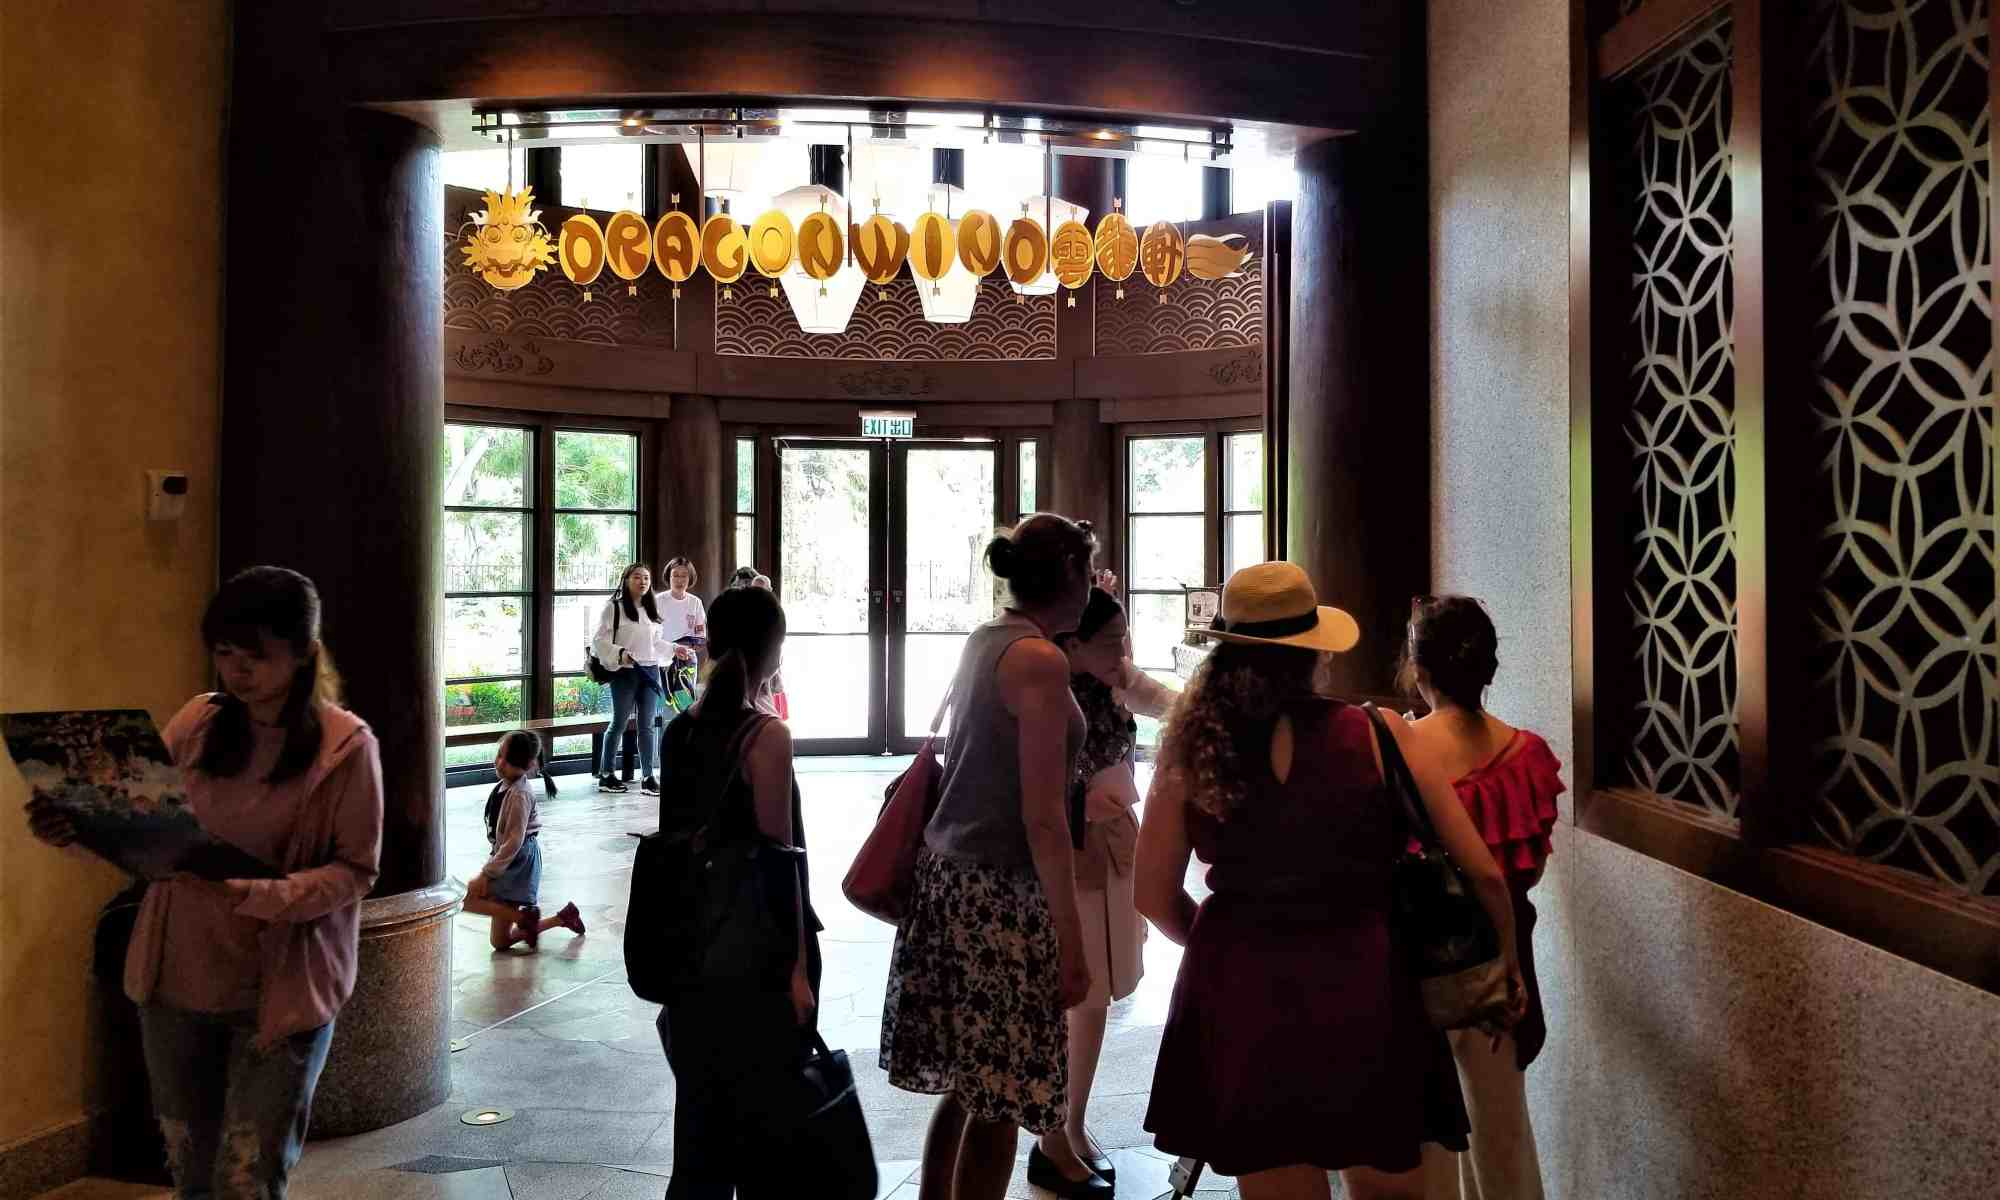 image-of-dragon-wind-restaurant-entrance